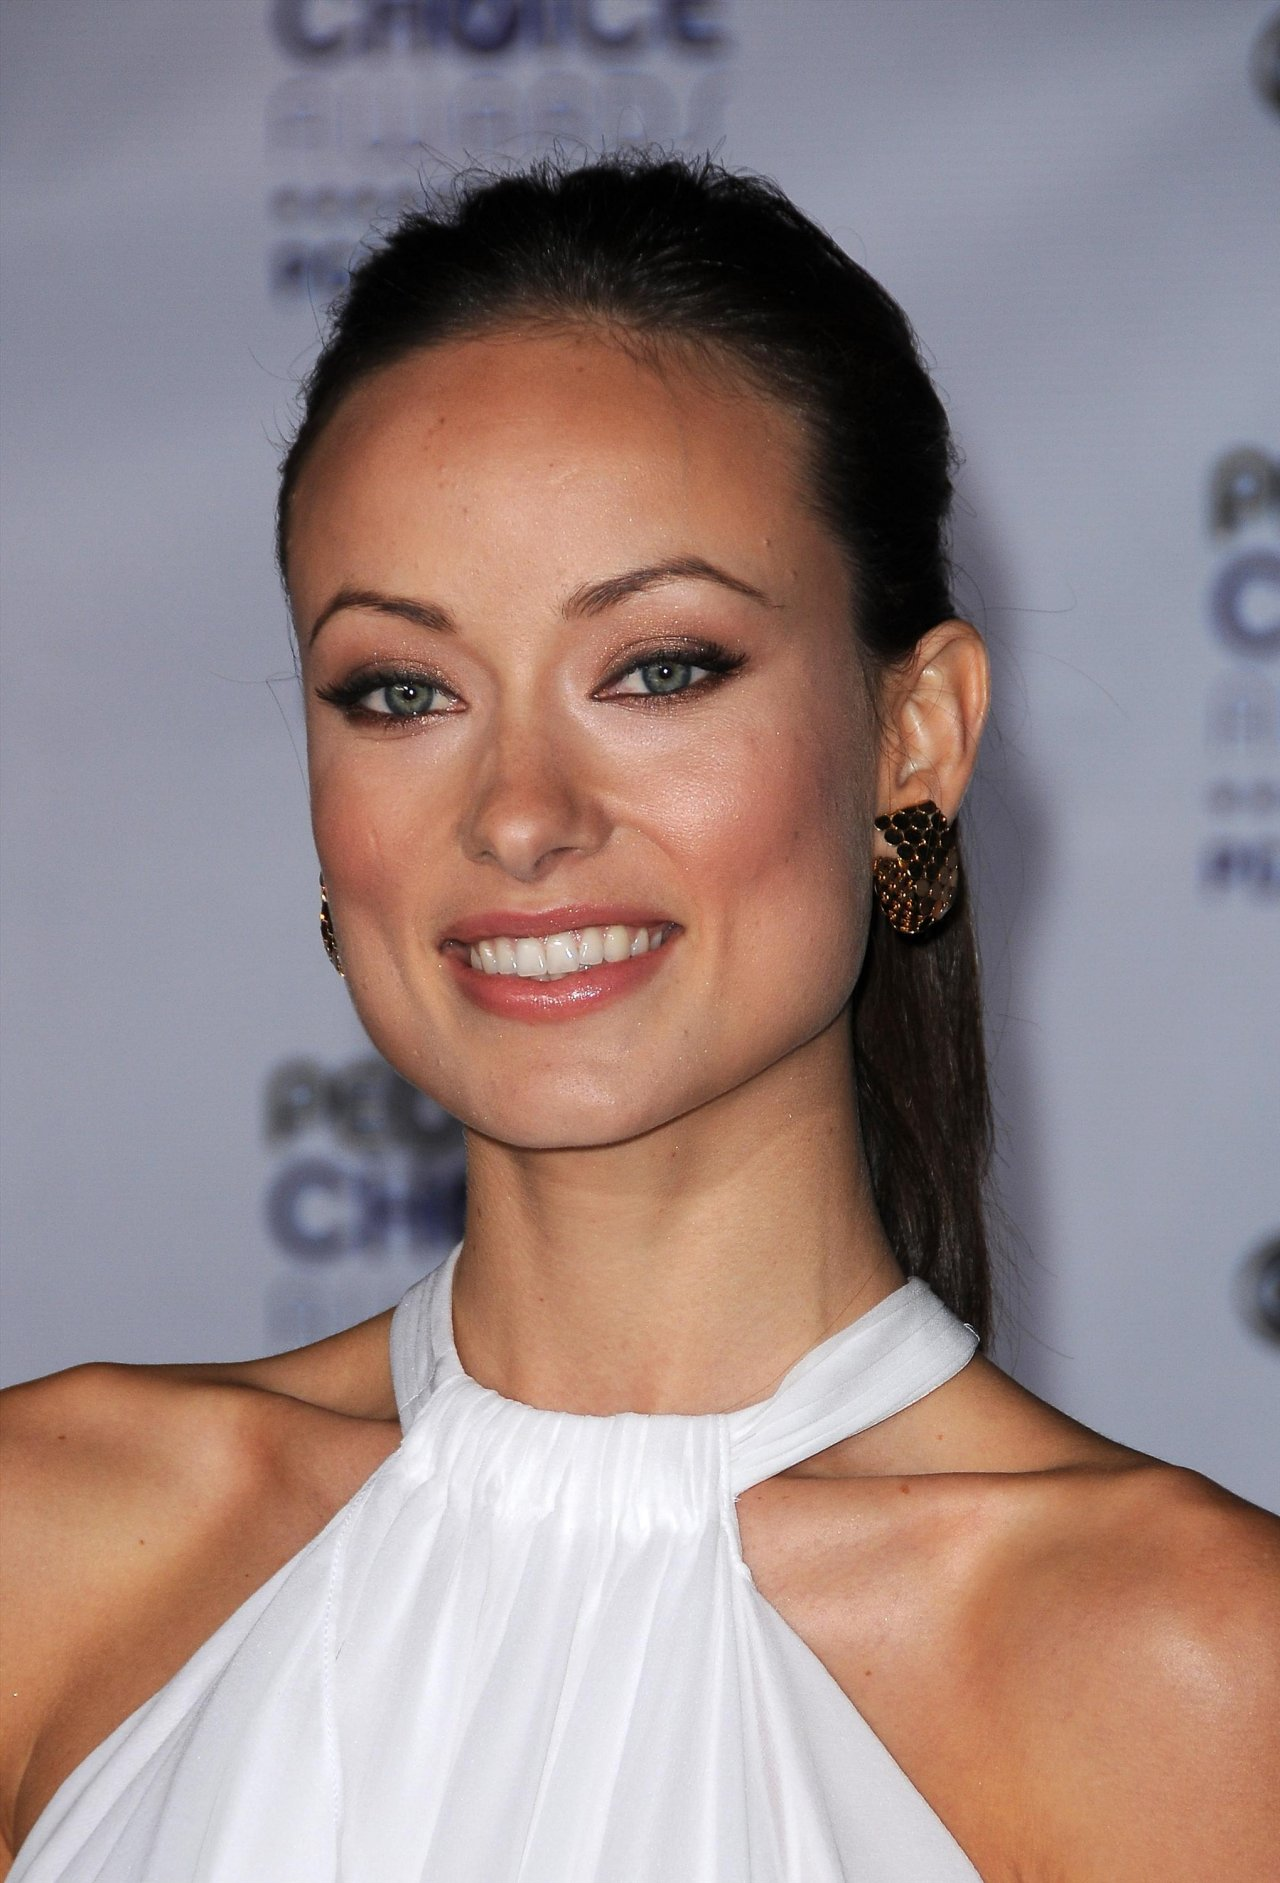 olivia-wilde-photo-gallery-109260.jpg